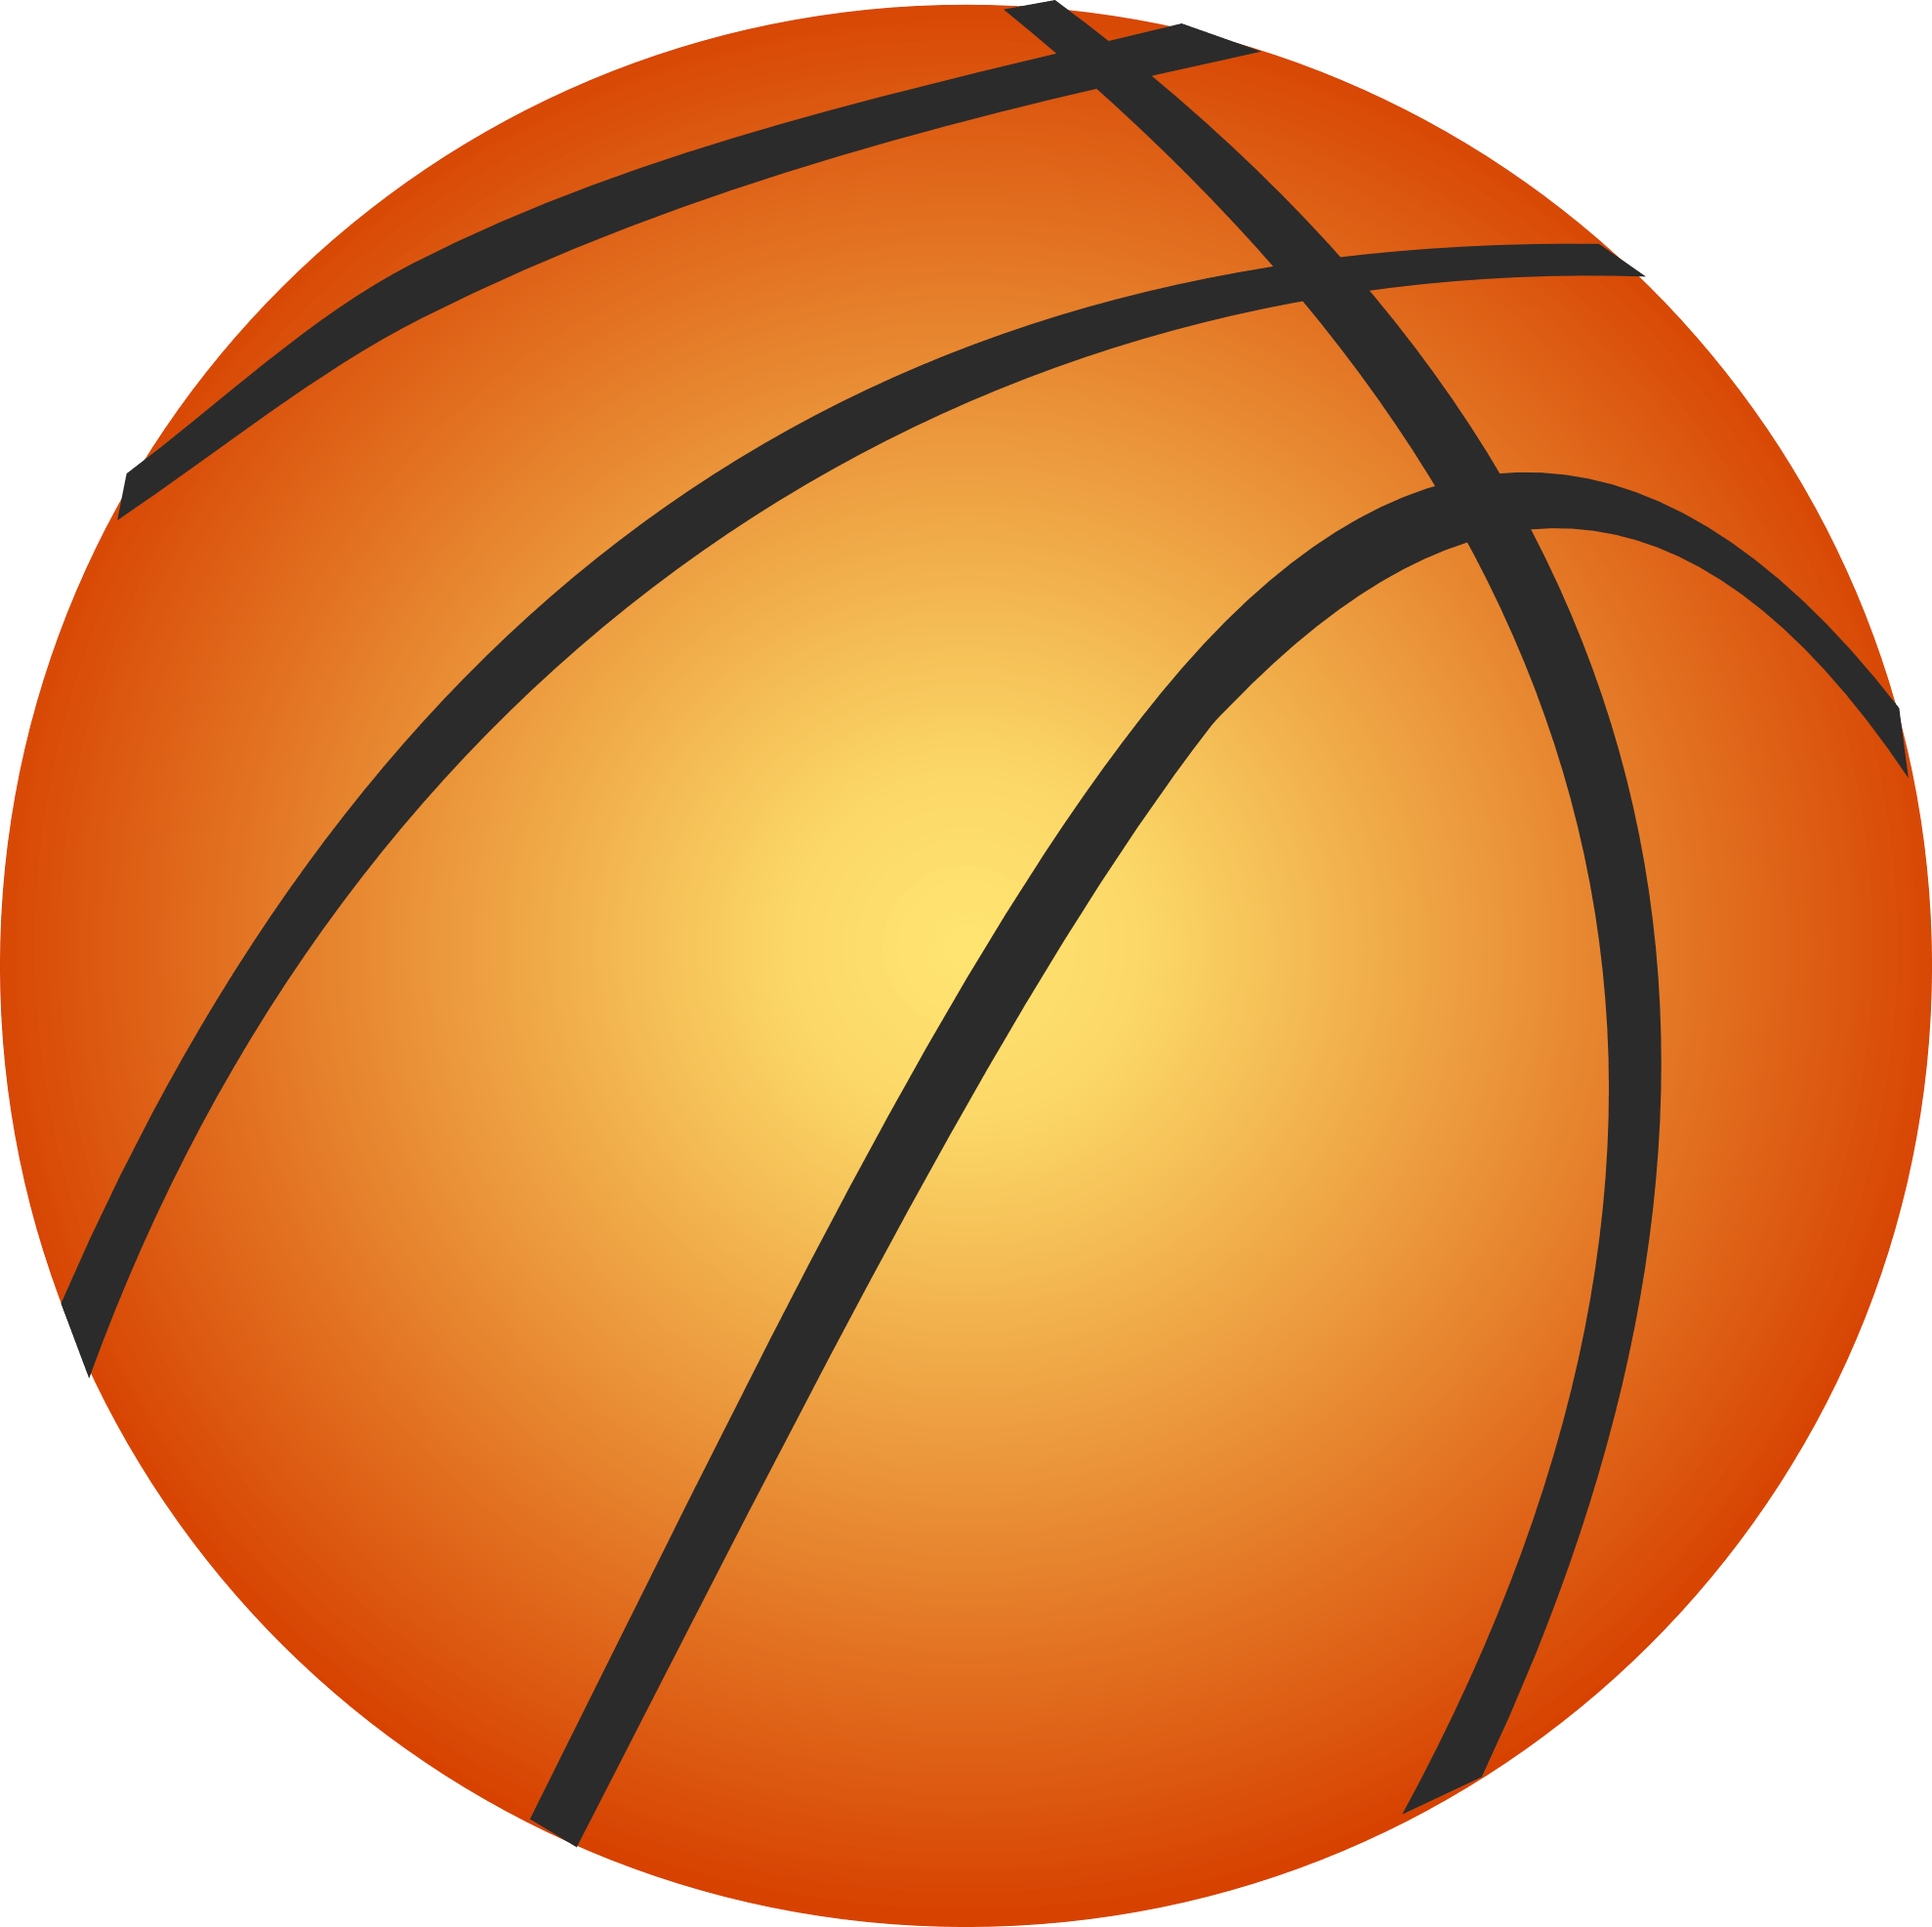 1979x1974 Download Basketball Free PNG photo images and clipart FreePNGImg